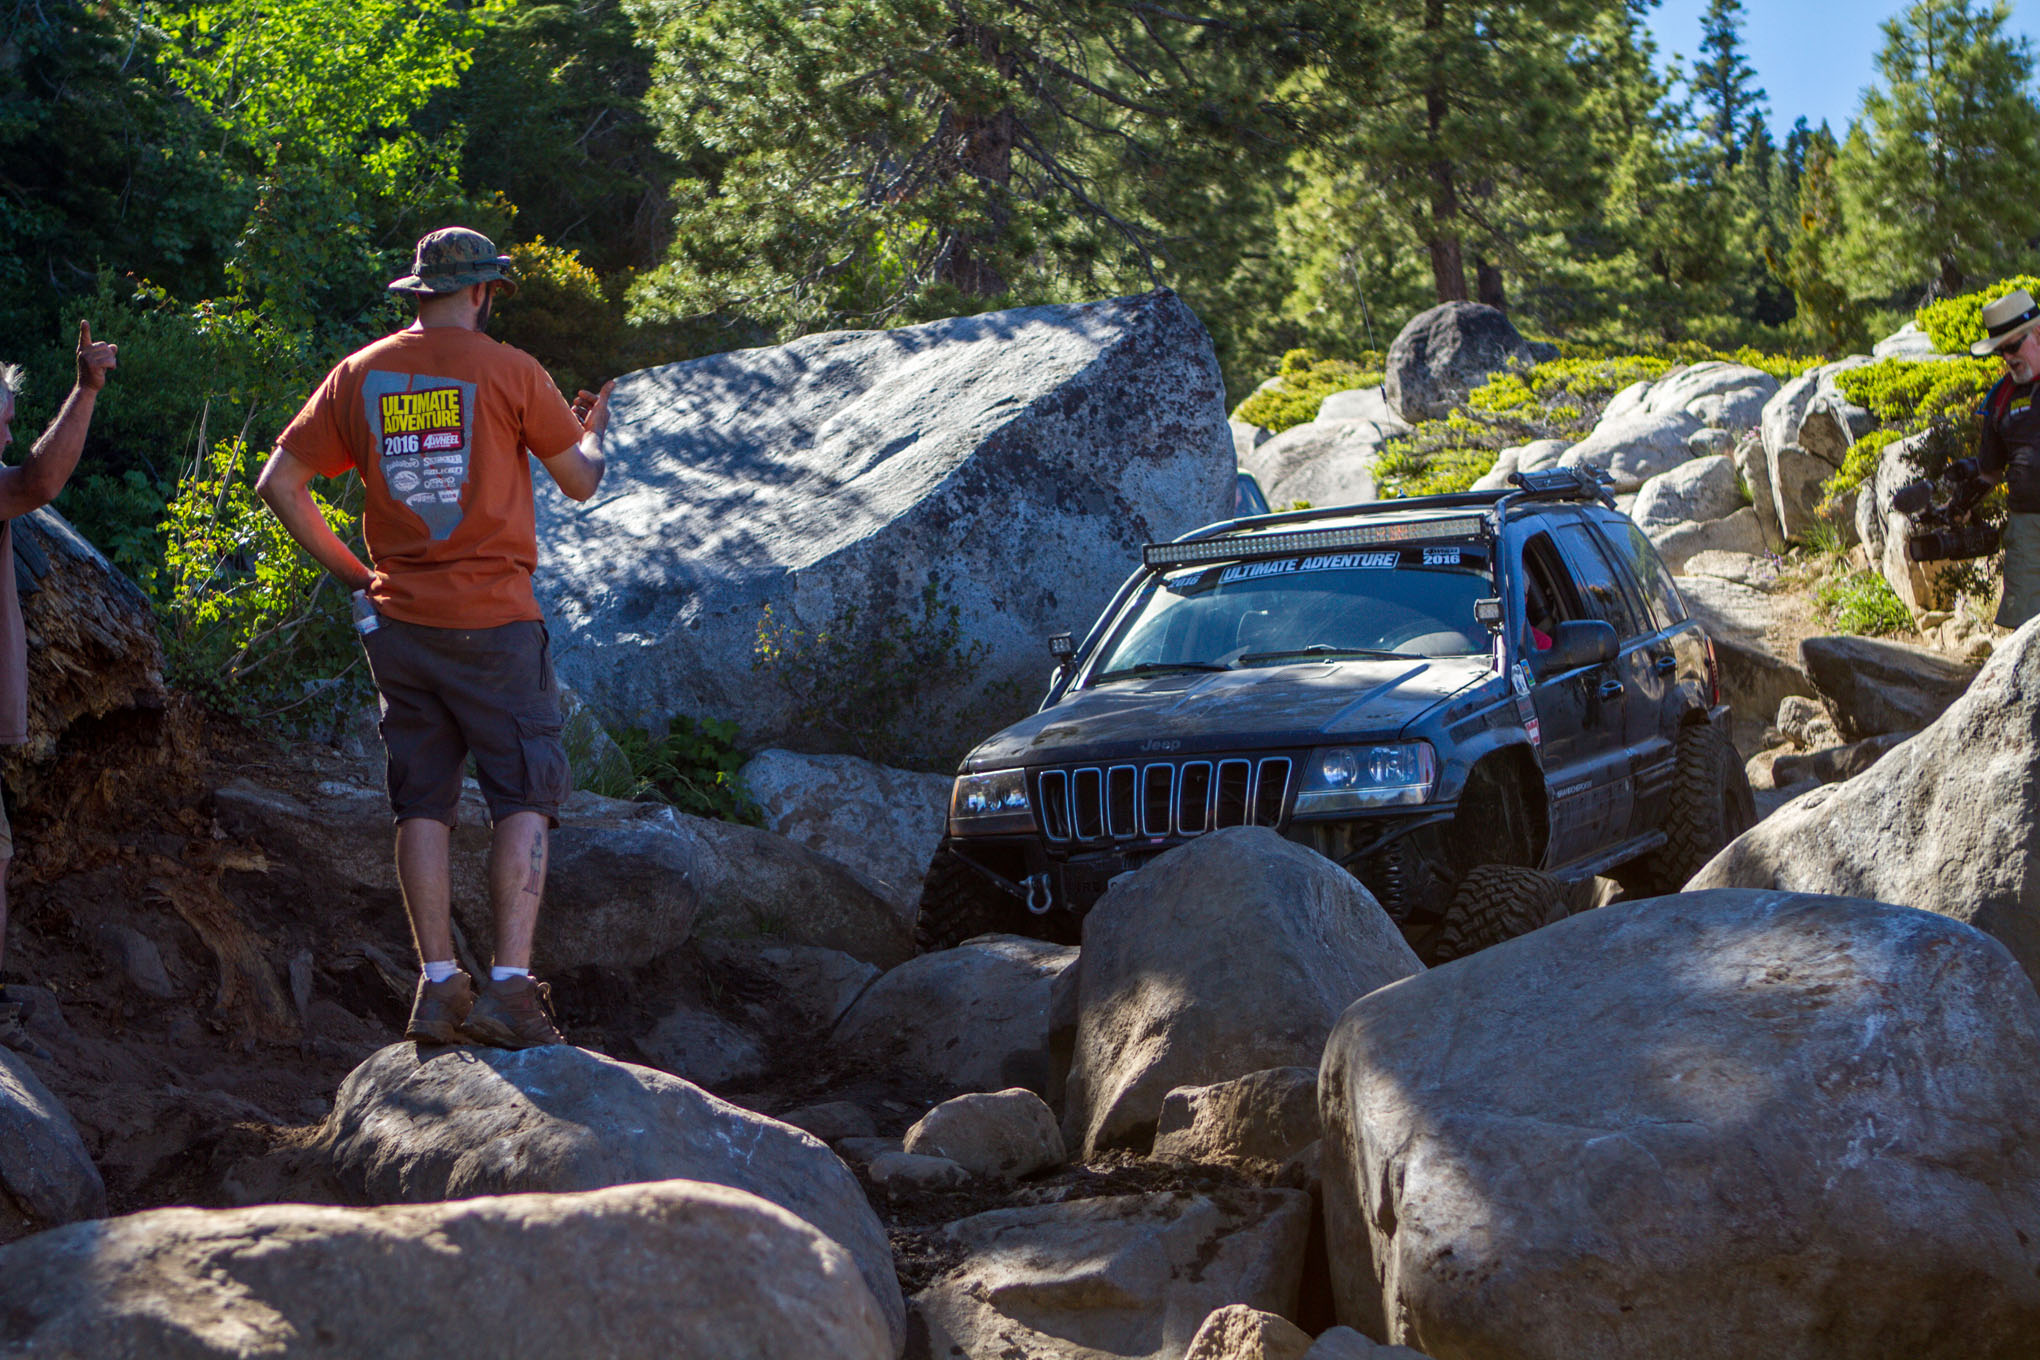 004 2016 Ultimate Adventure vehicles and people